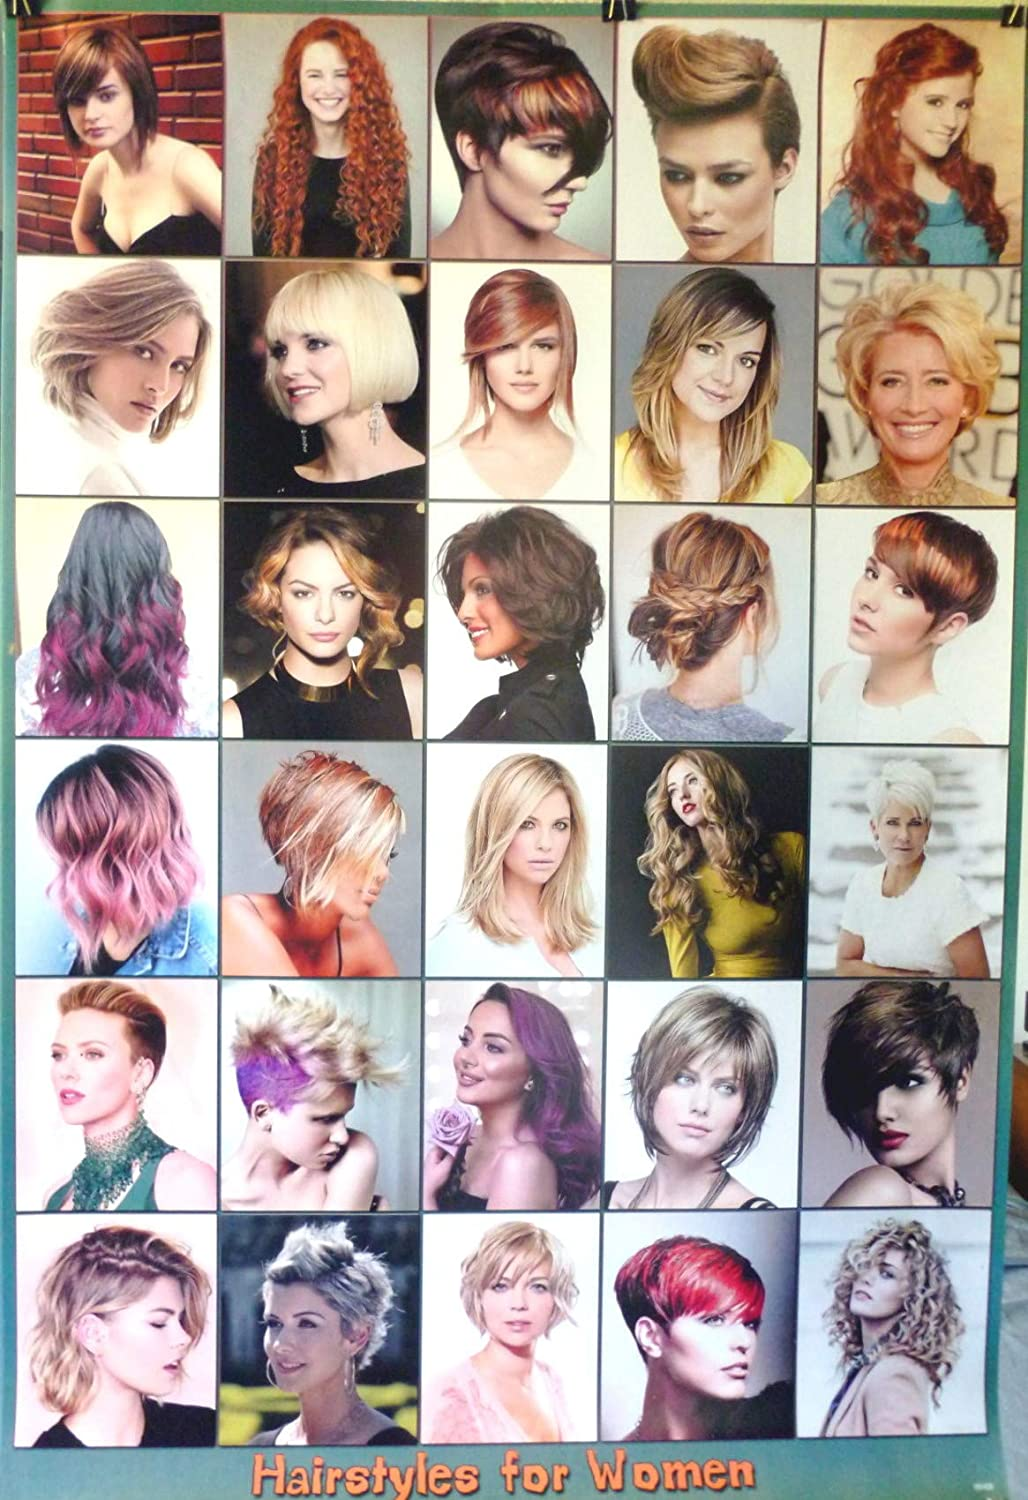 Amazon Com Womens Celebrity Hairstyles Poster D 23 5 X 34 Hair Style Guide Salon Friendly Mugshots Home Kitchen